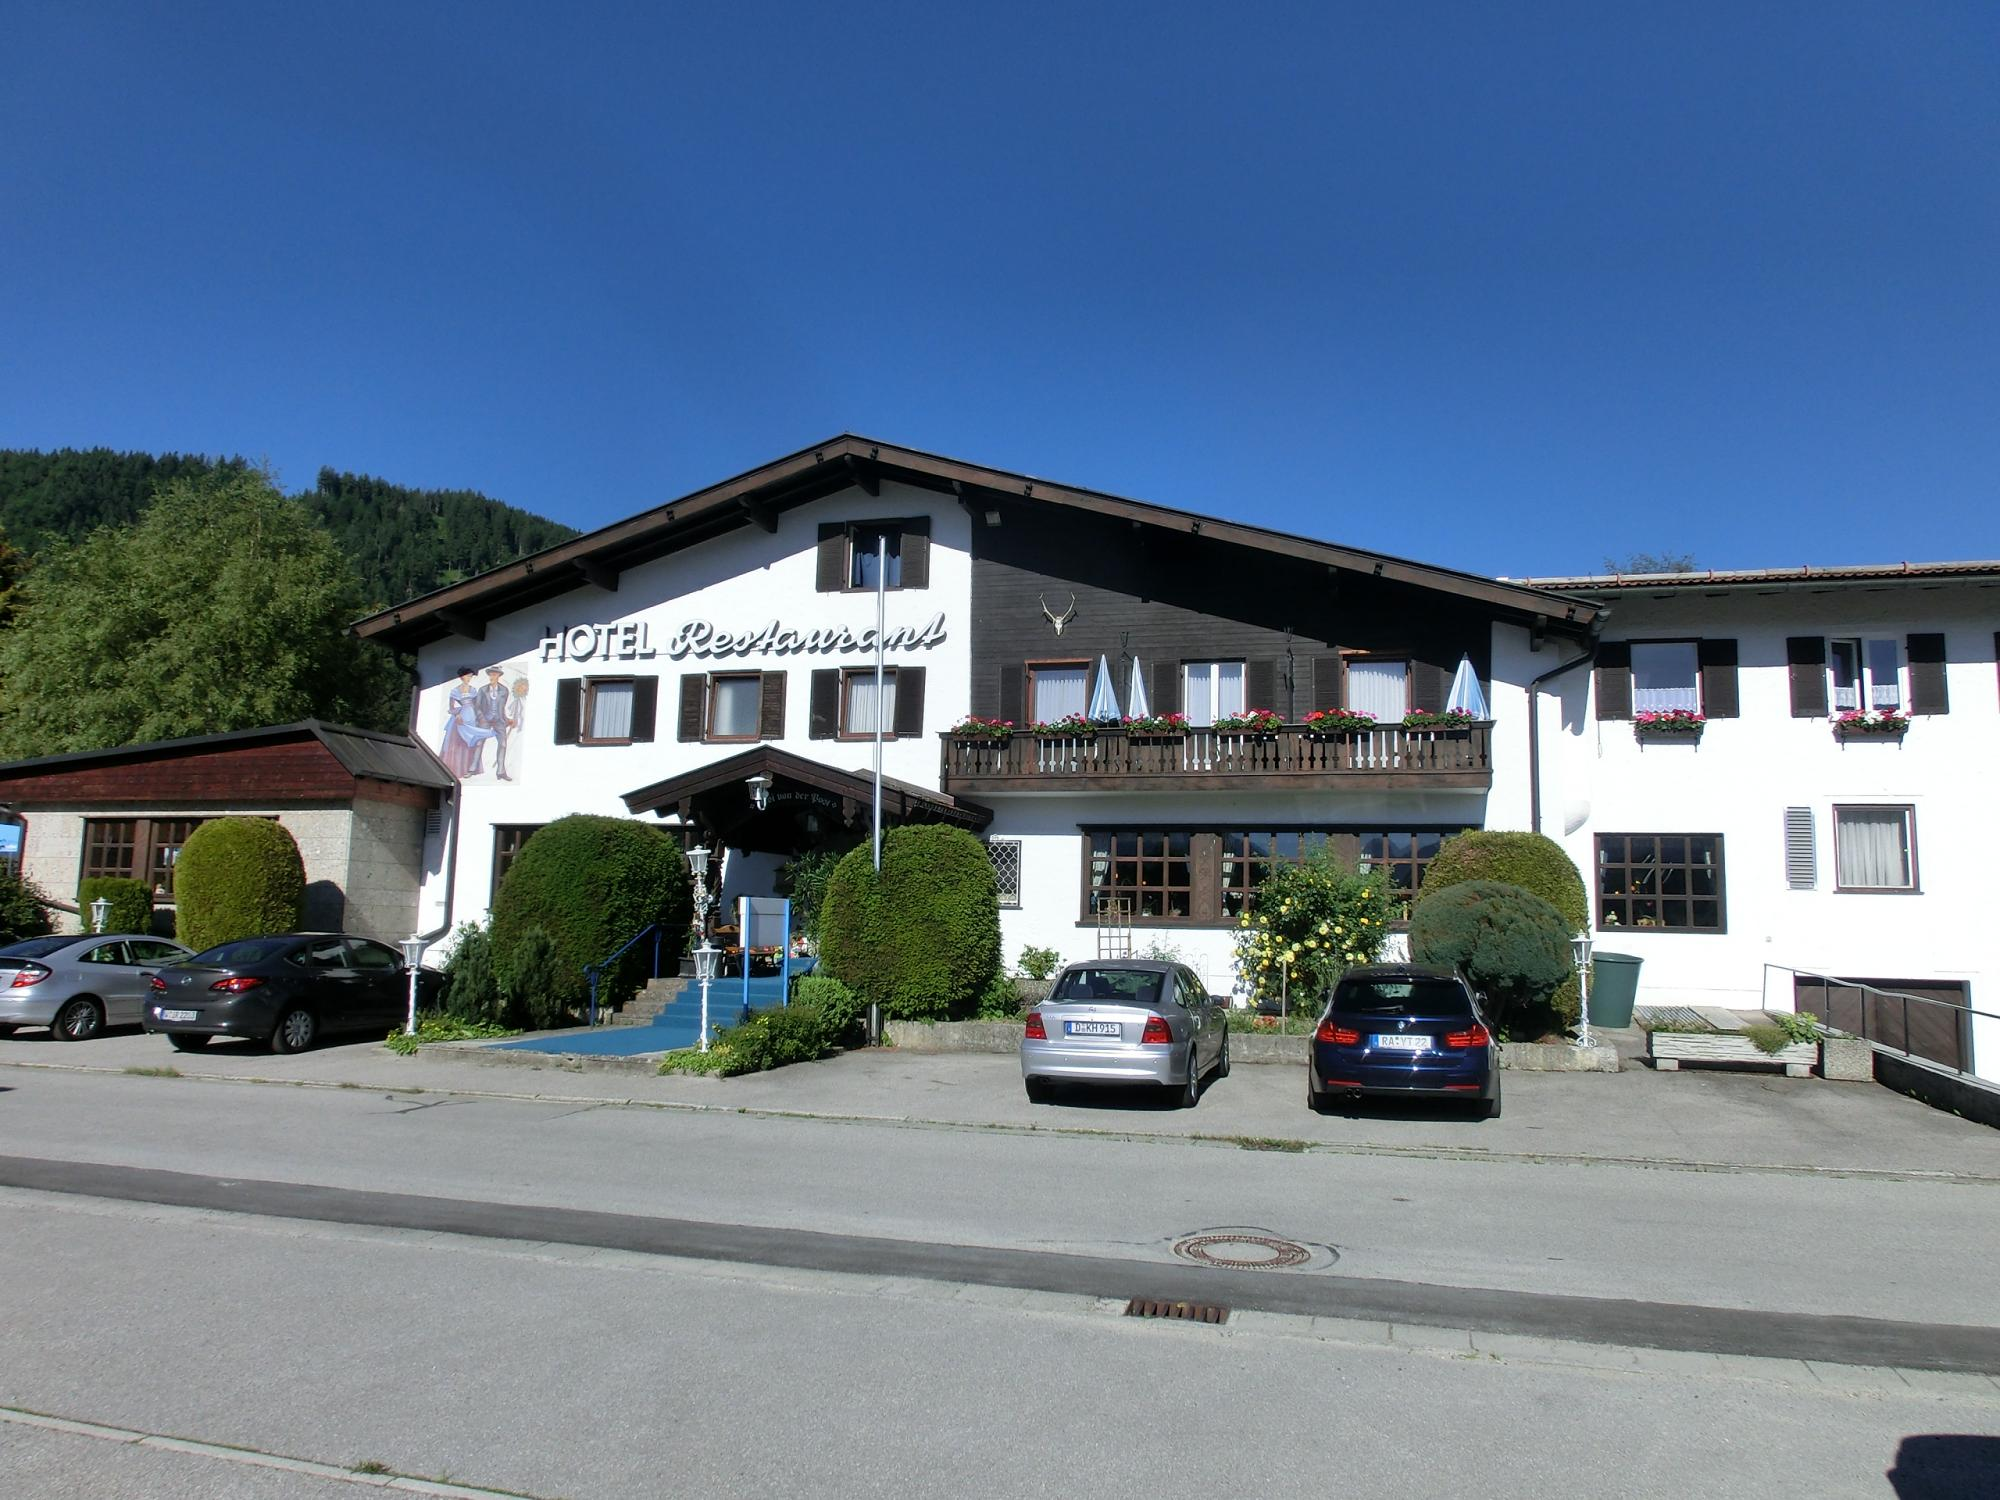 Hotel Resi von der Post in Bad Wiessee